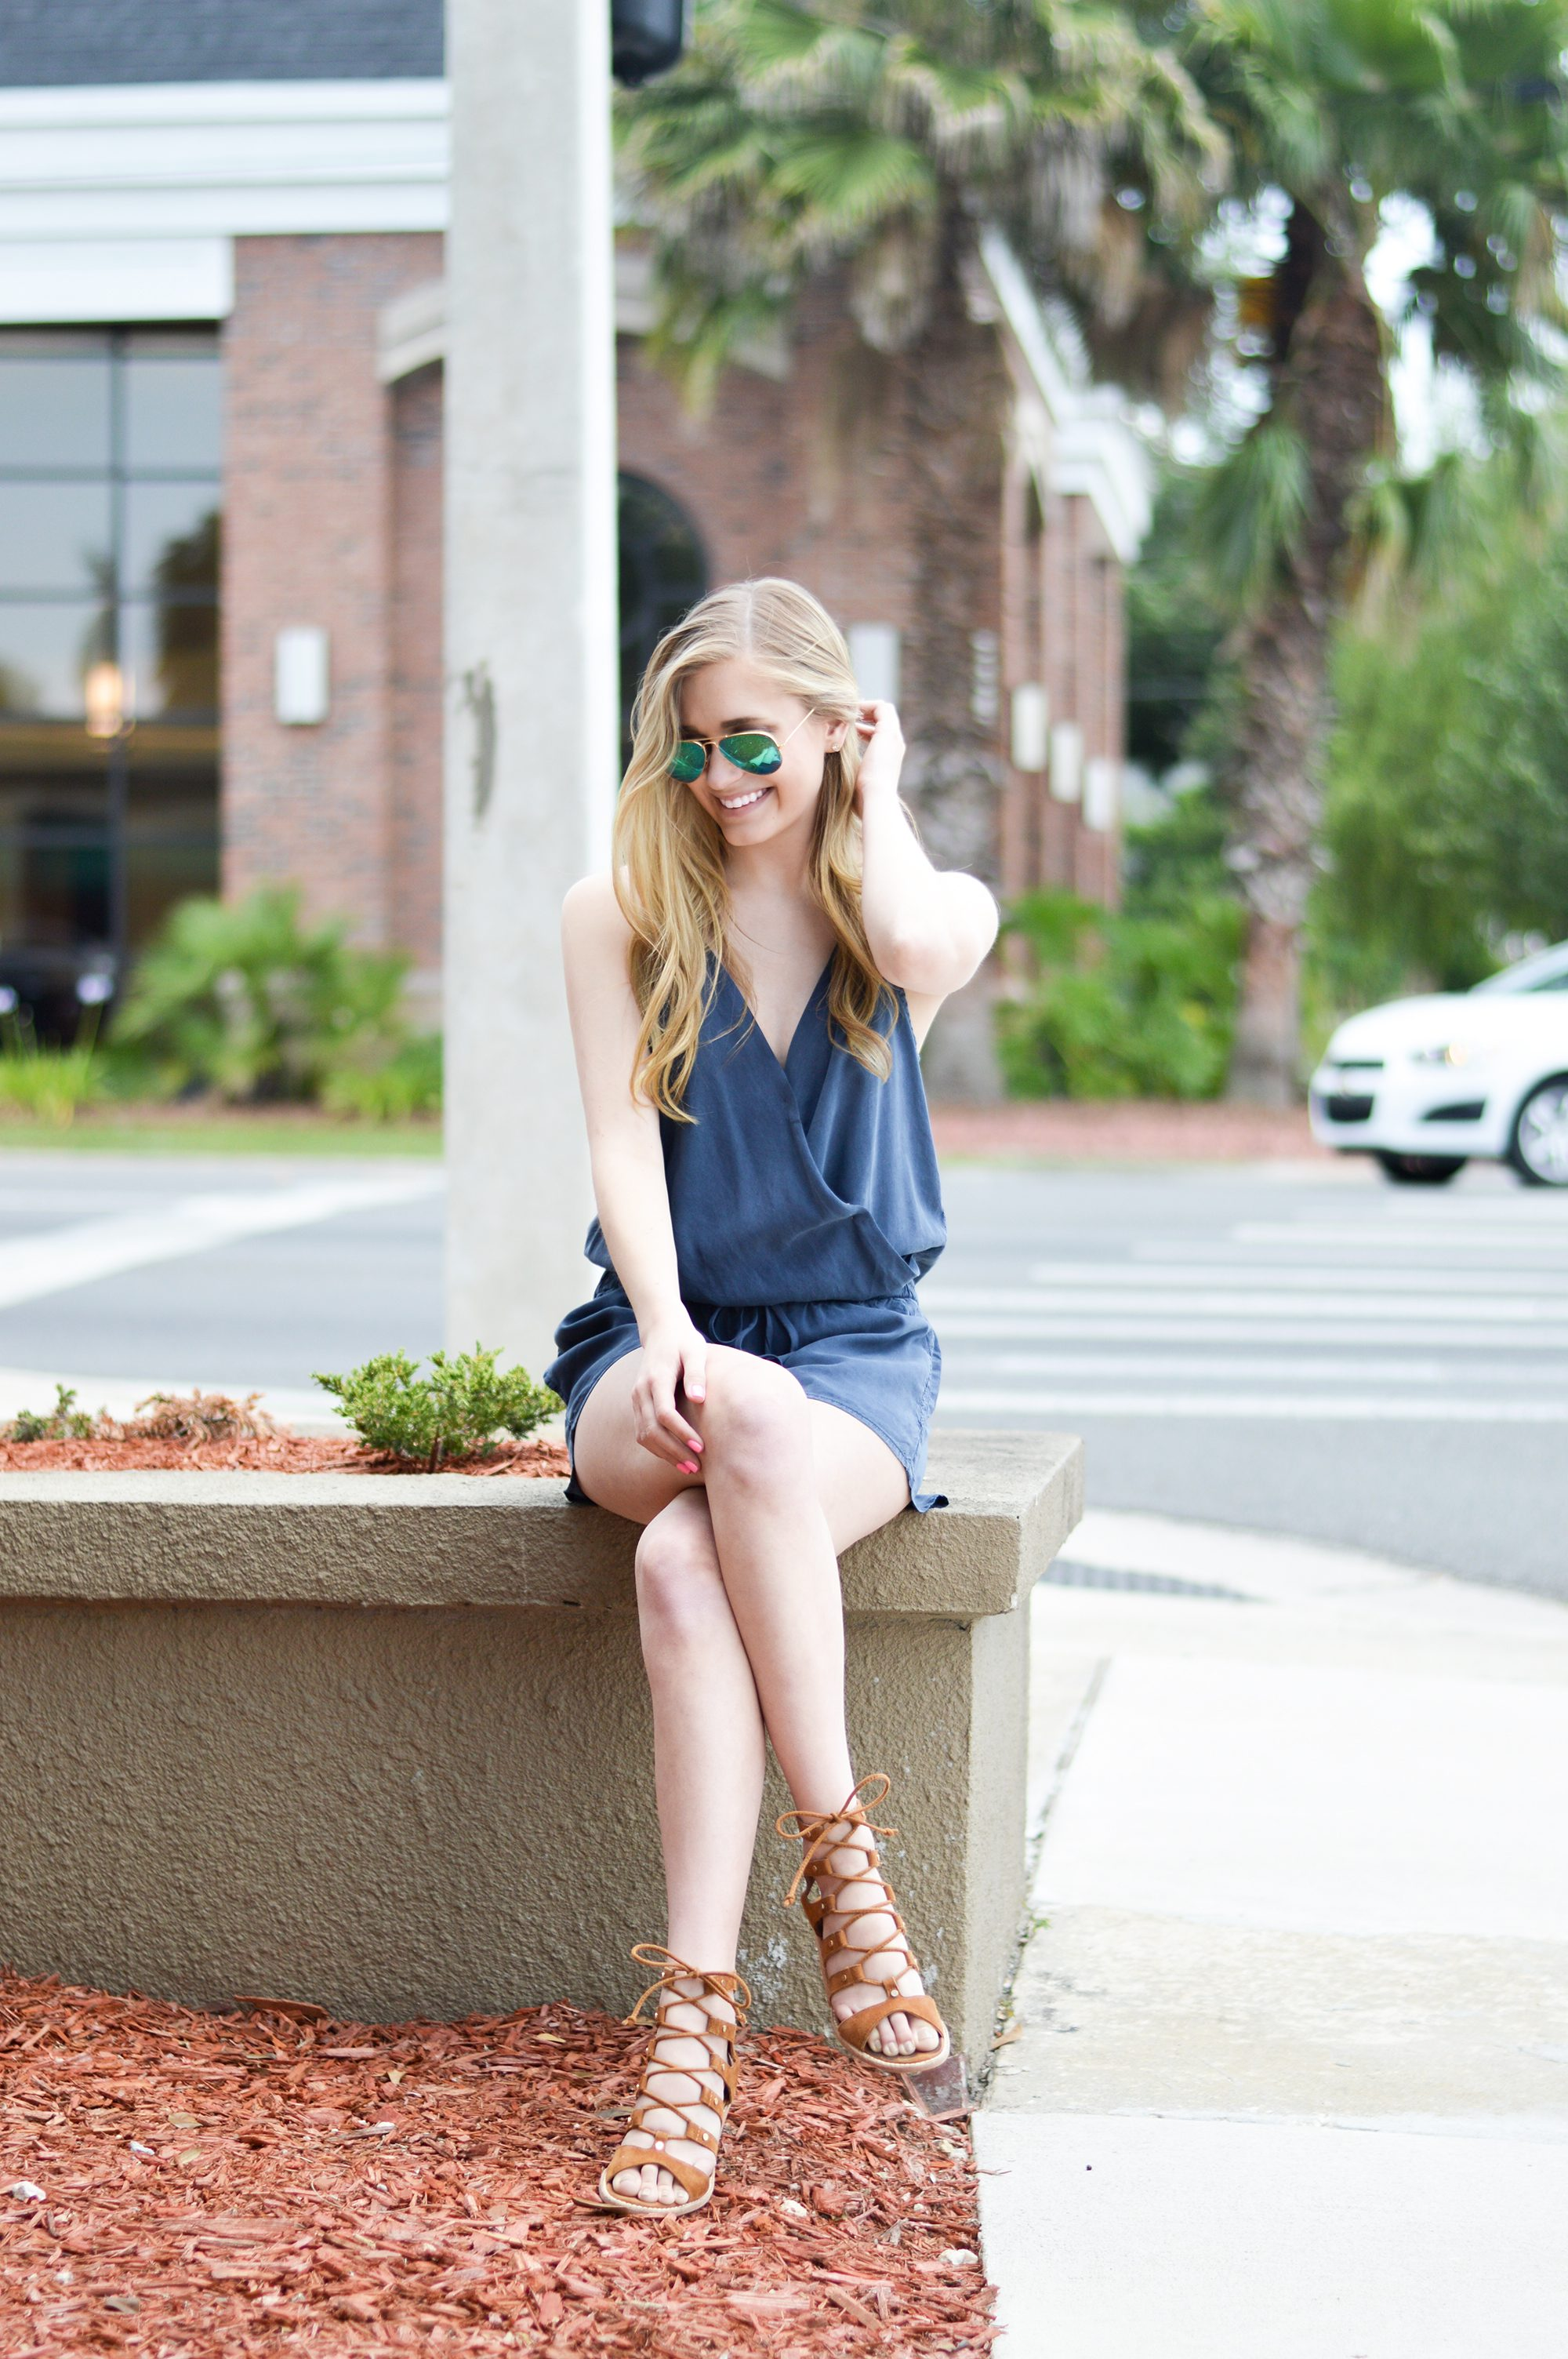 styelled blog, elle elisabeth, bella dahl, romper, the lost society, ray ban, tie dye, 7 for all mankind, 7 jeans, summer style, summer trends, style blogger, fashion blogger, dolce vita - 06